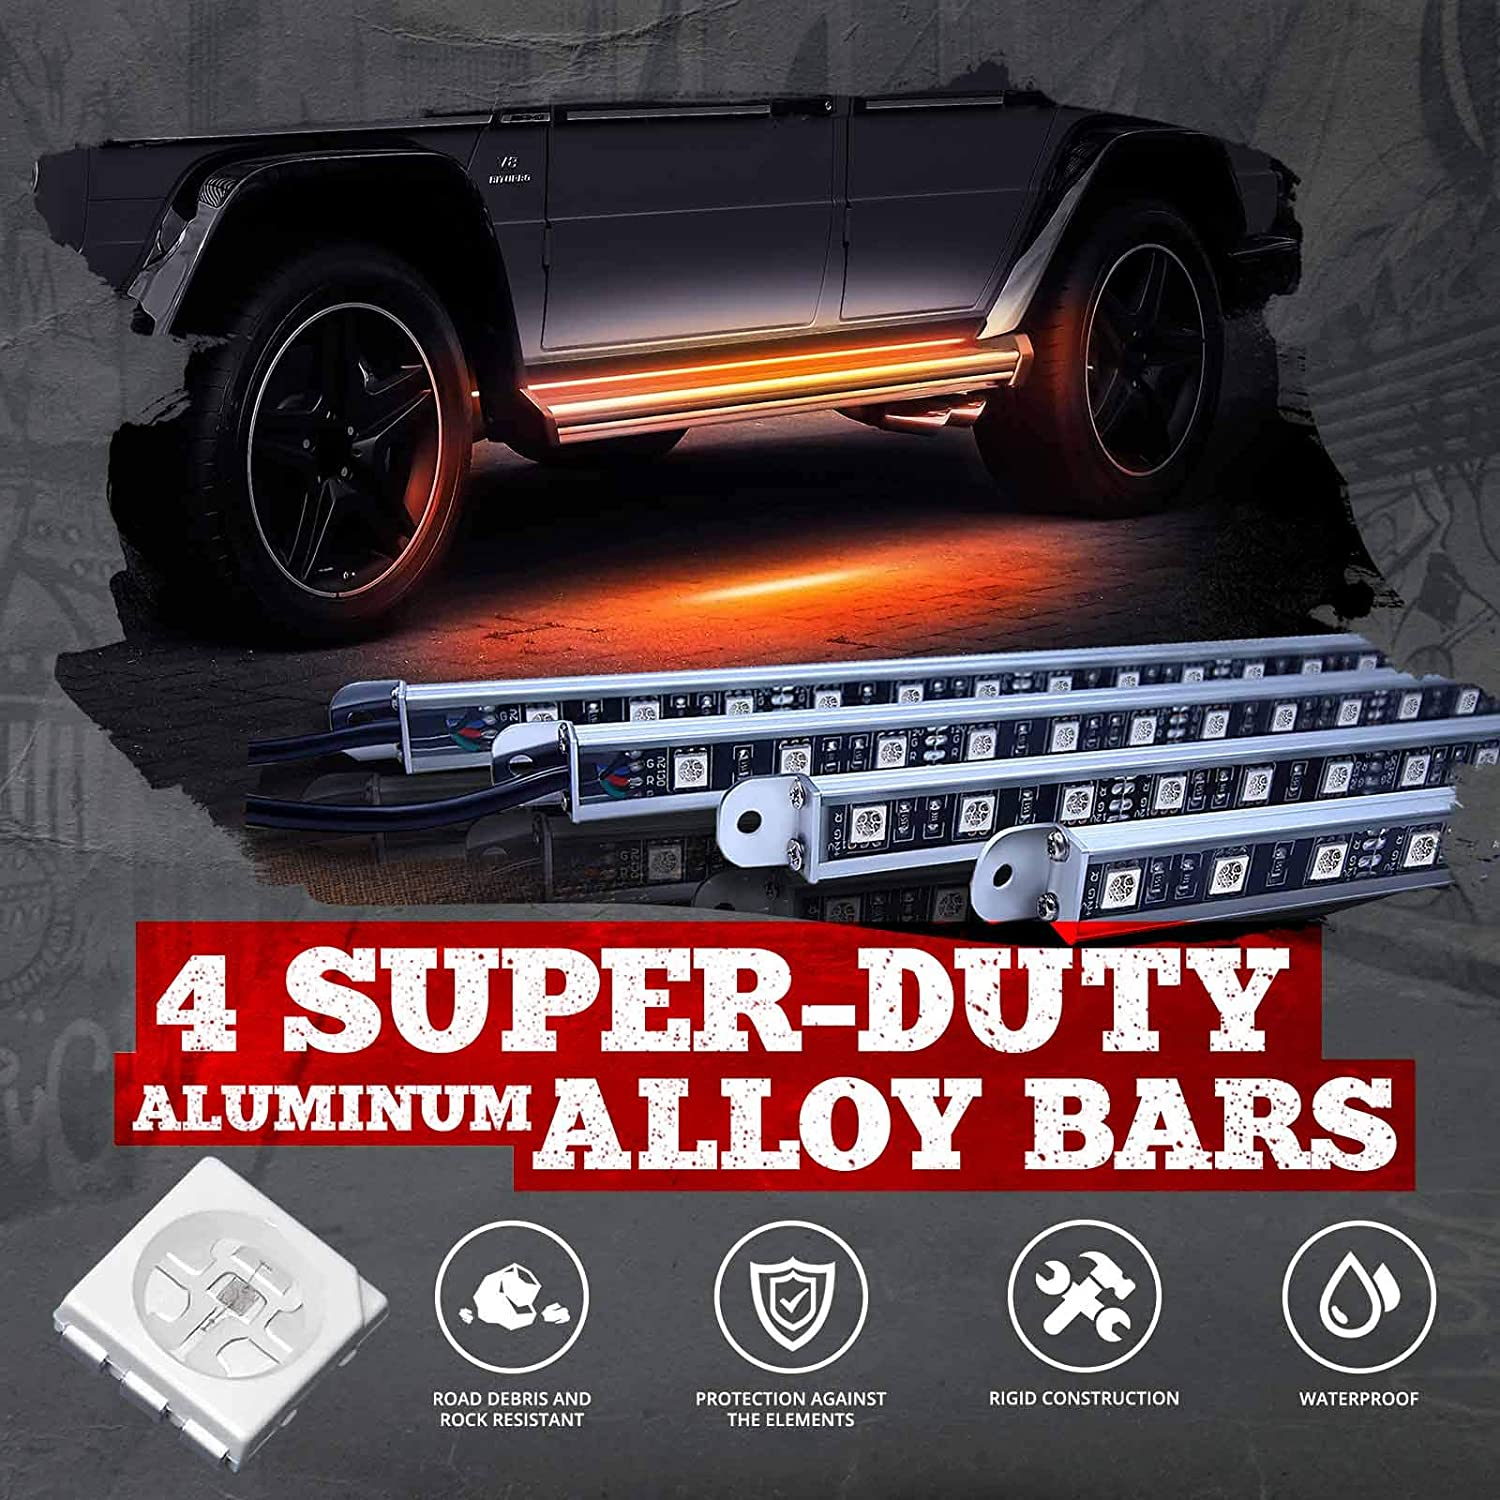 SUVs Sound Sync Mode OPT7 Aura PRO Bluetooth Running Board Nerf Lights 16 Color Options RV Side Bar Step Light LED Kit for Trucks 1 YR Warranty- iOS /& Android Enabled 4 Bars